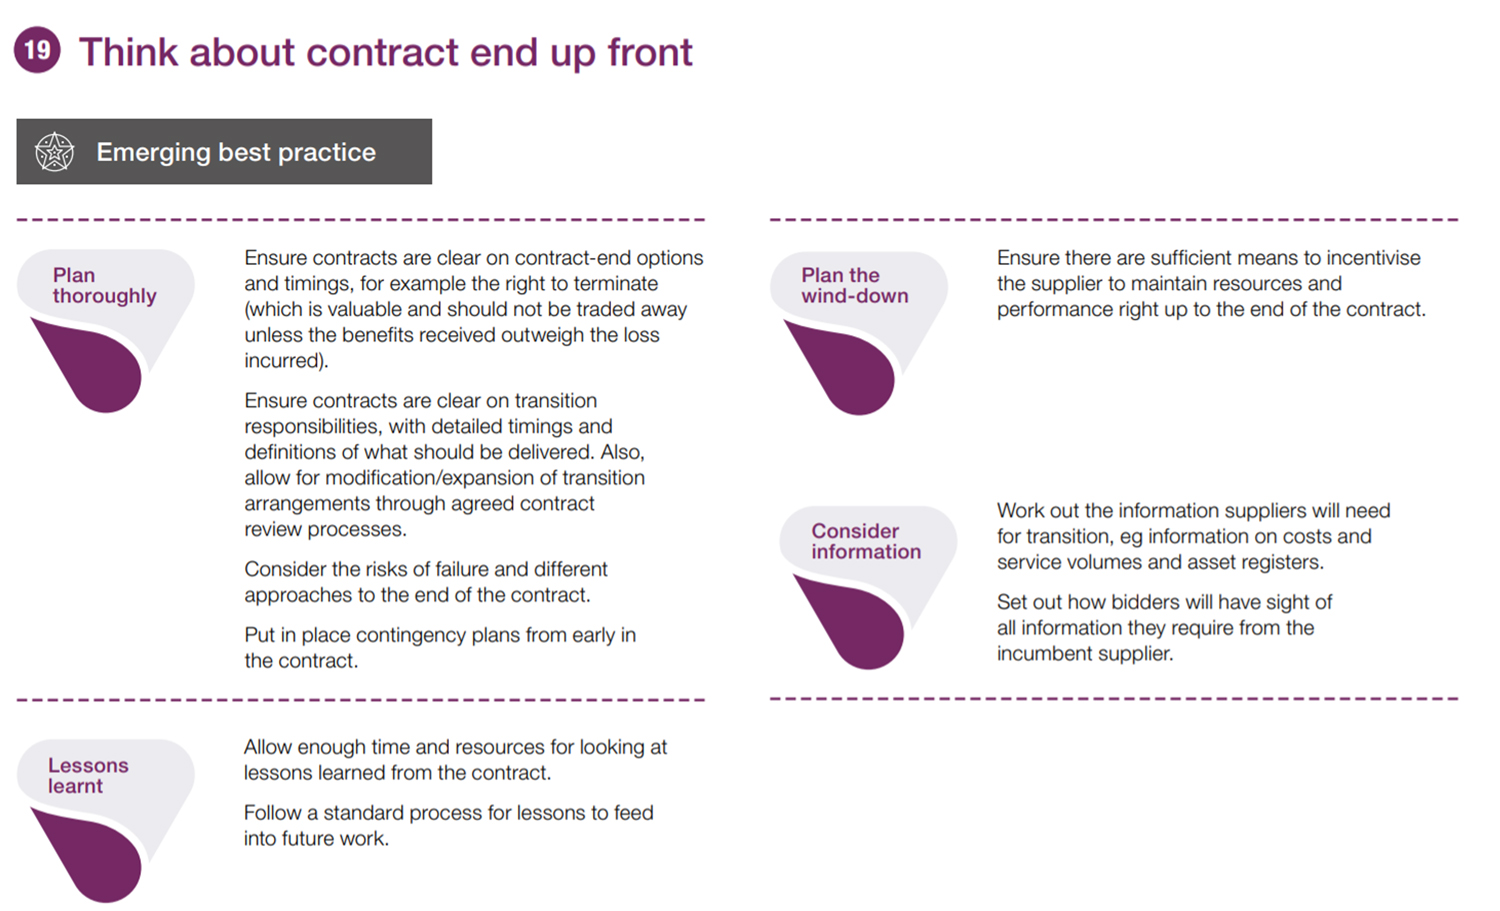 An image of contract planning insight 19 from NAO guide to commercial and contract management